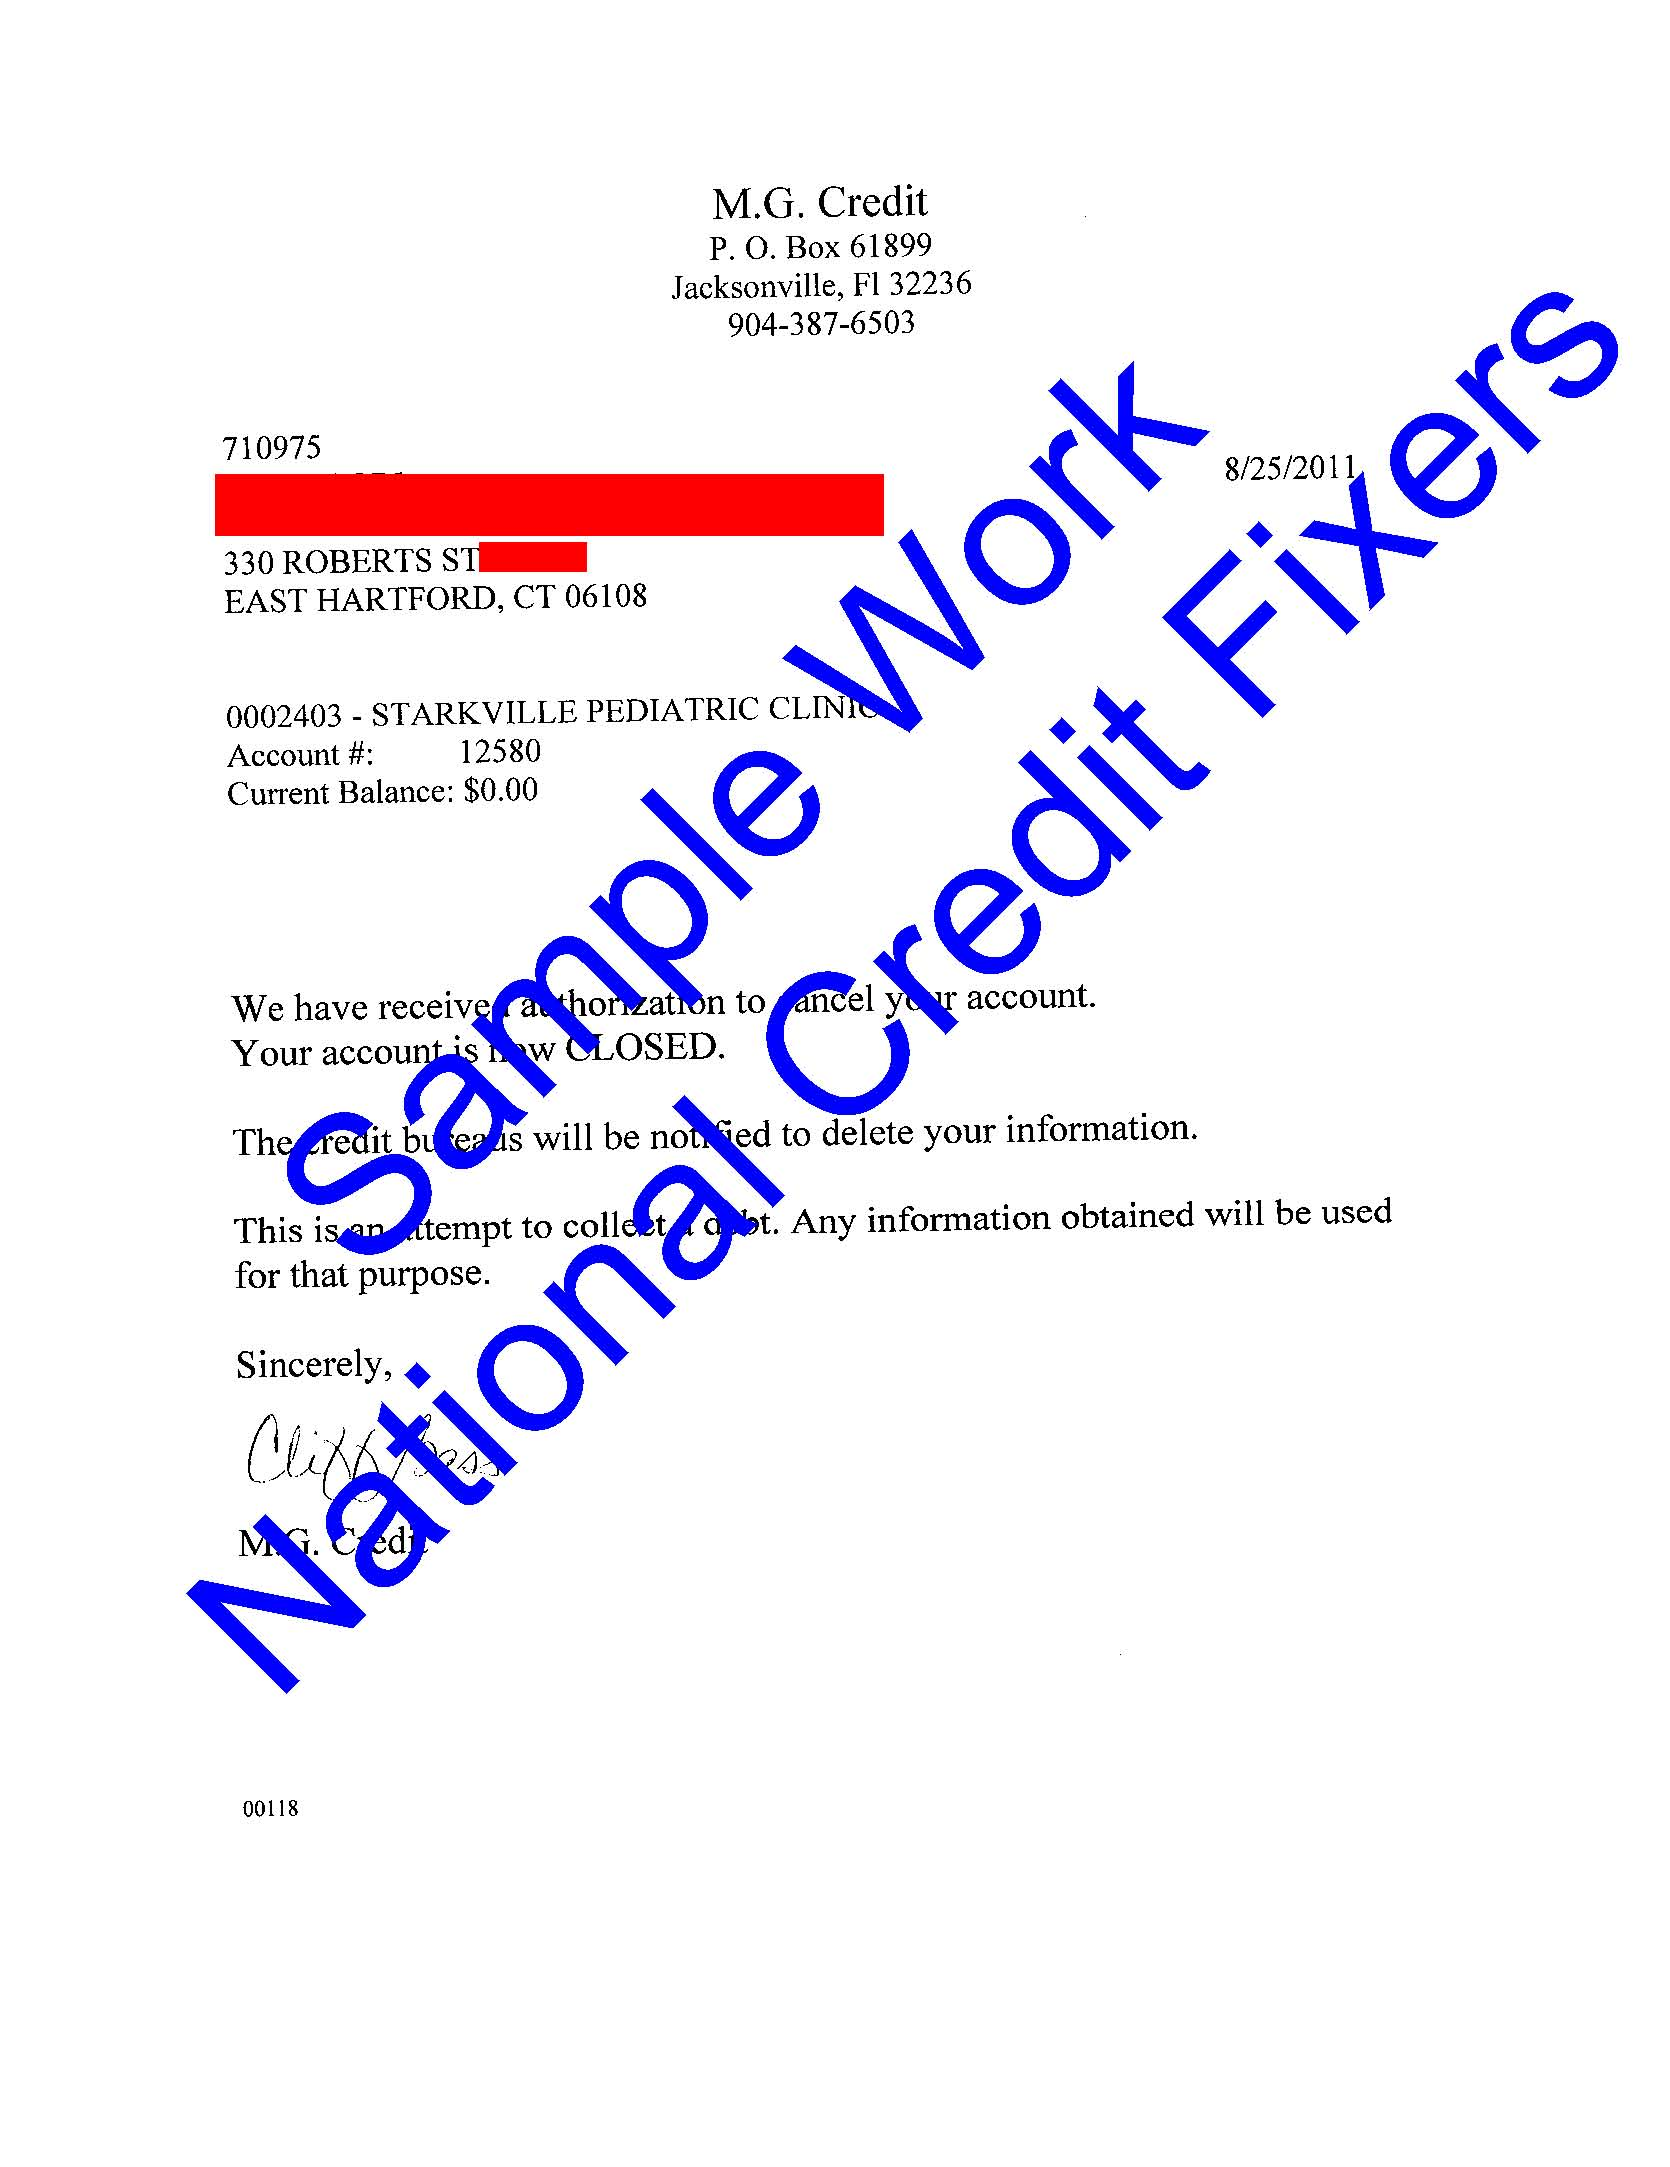 MG Credit Deletion